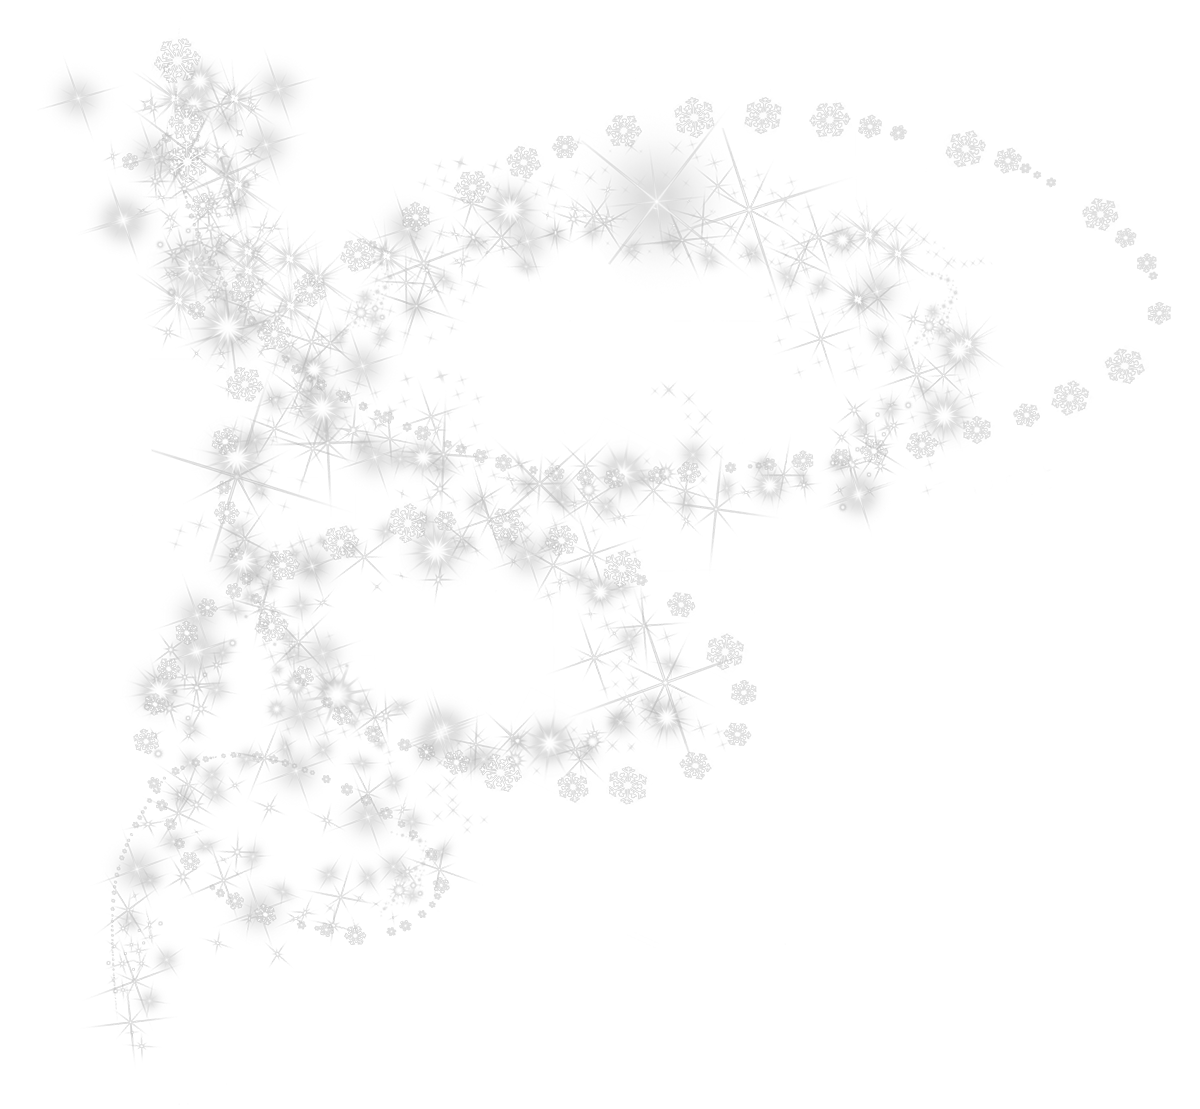 White Snowflakes Pic Png image #41275